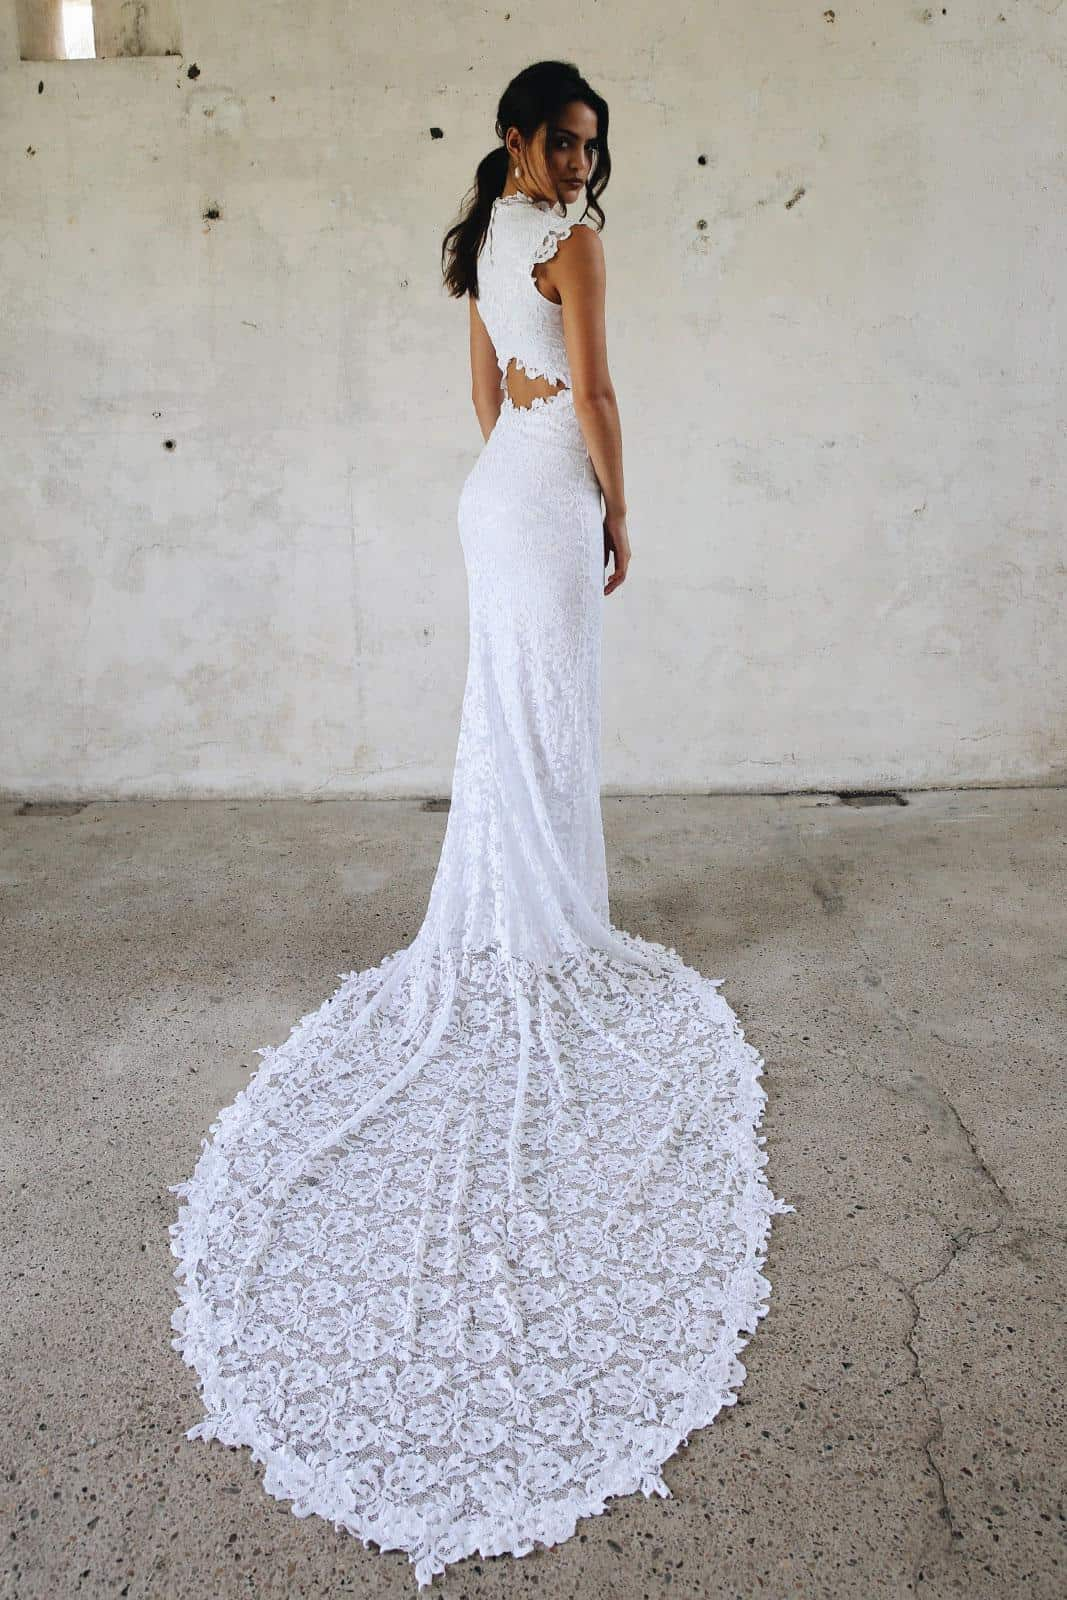 Boho Wedding Dress Inspiration French Lace Dresses Handmade by Grace Loves Lace Renata